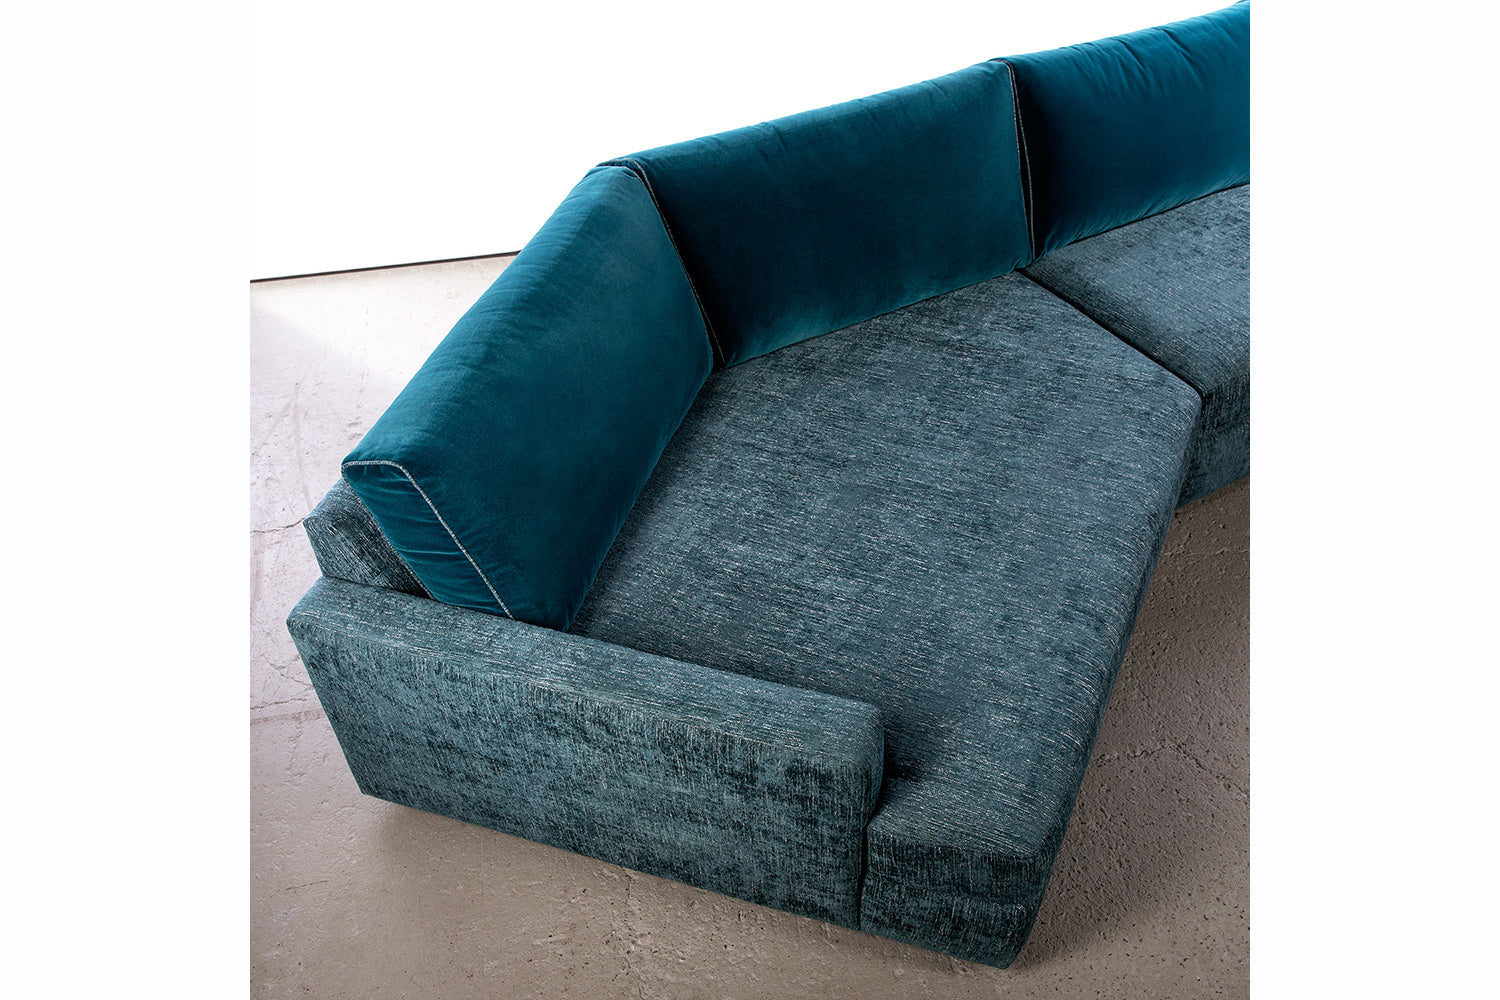 ffabb Coasty Slim modular Sectional in peacock mohair top view